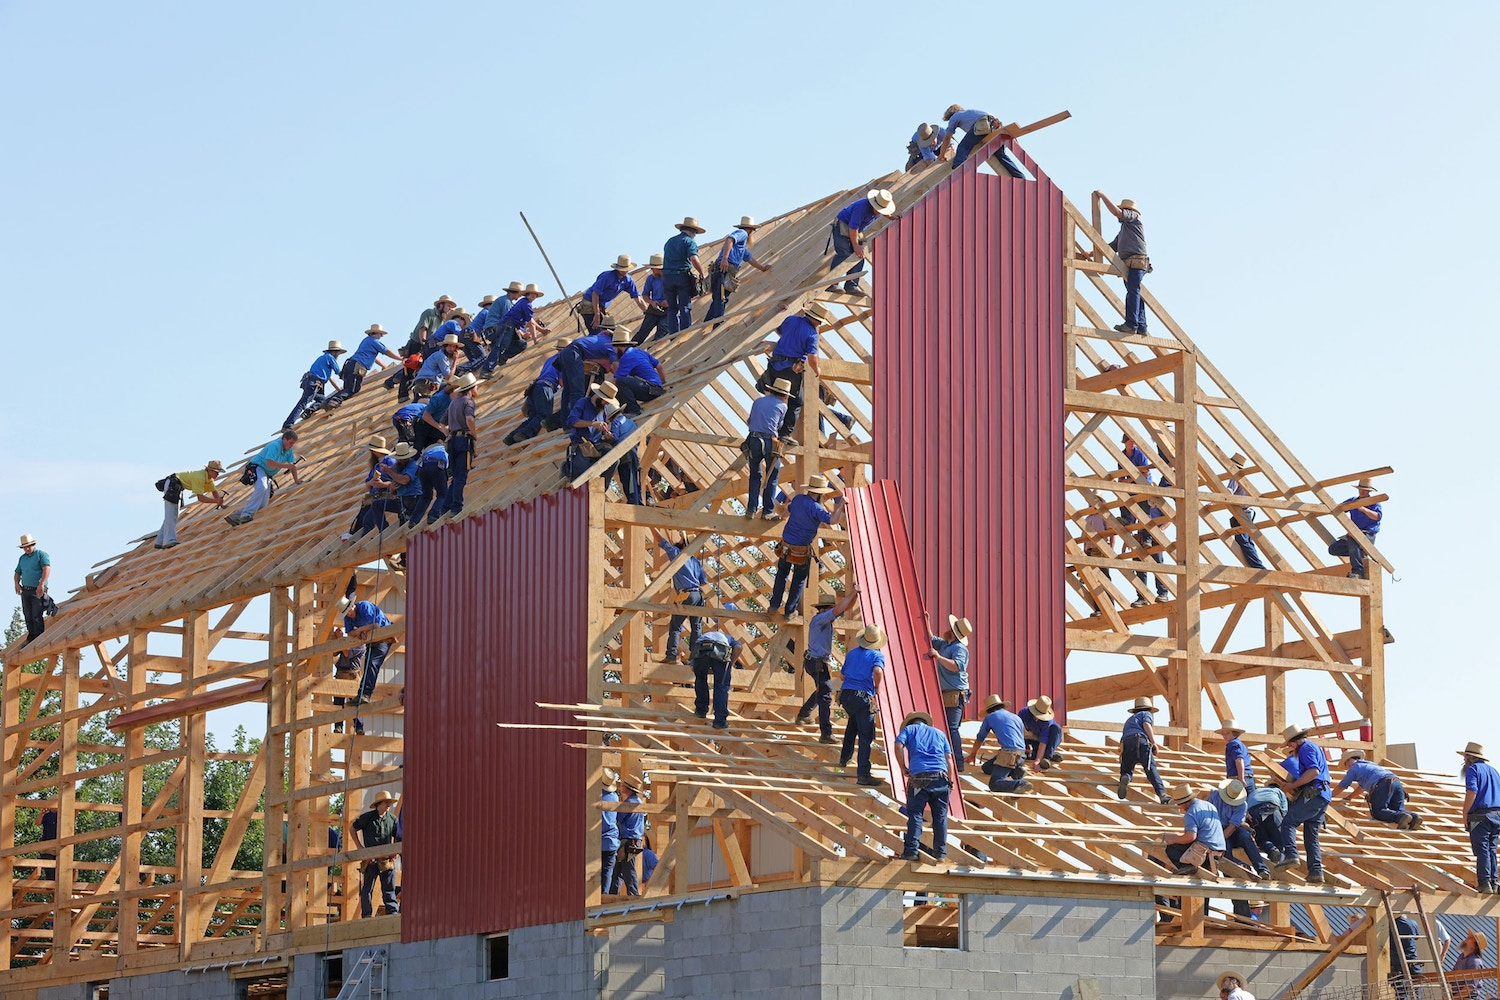 Team of people working together to build a house, an example of the Agile Mindset